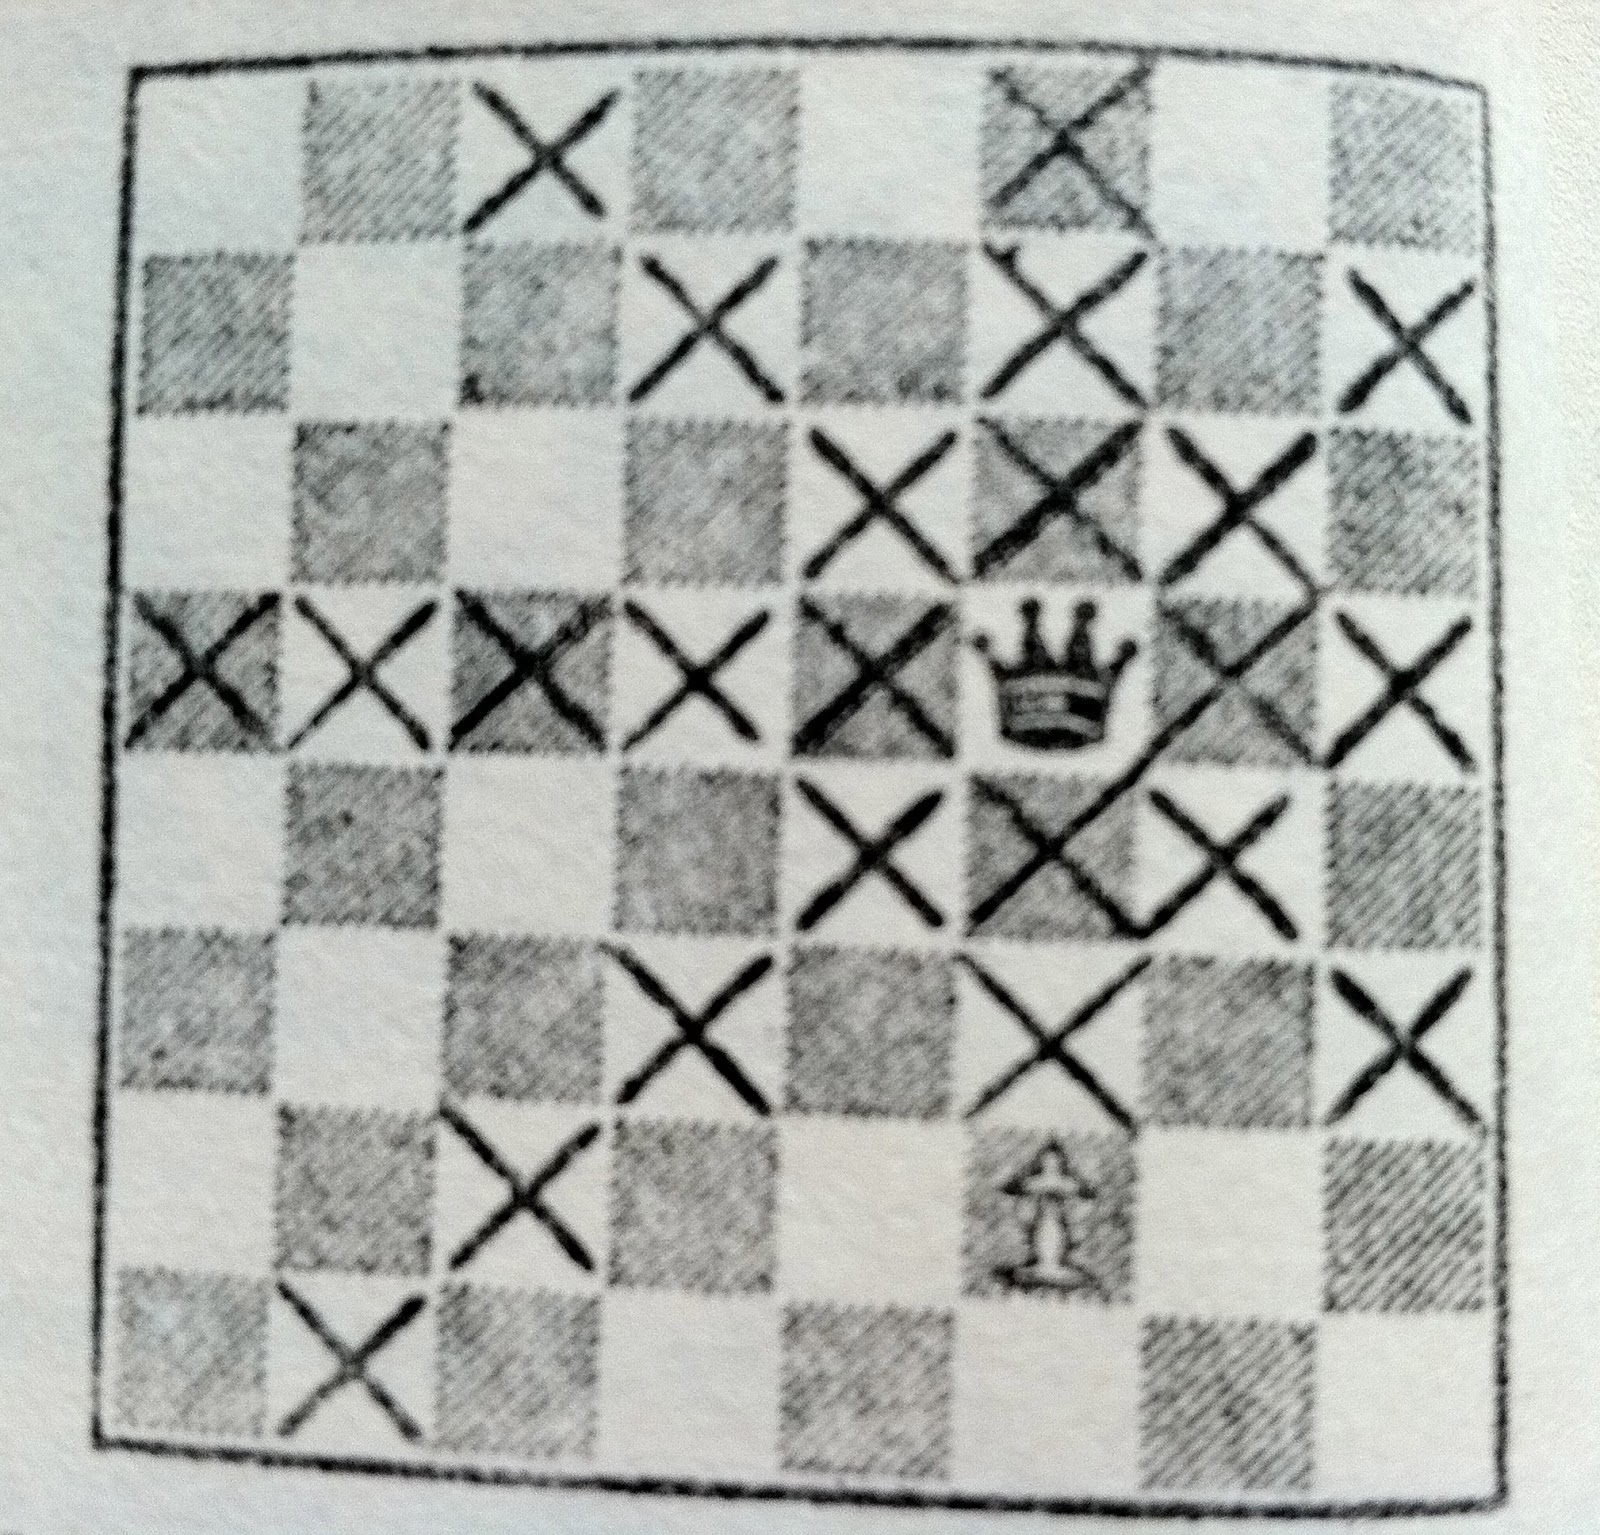 Marble Chess Board S Blog The Queen Chess Piece Moves